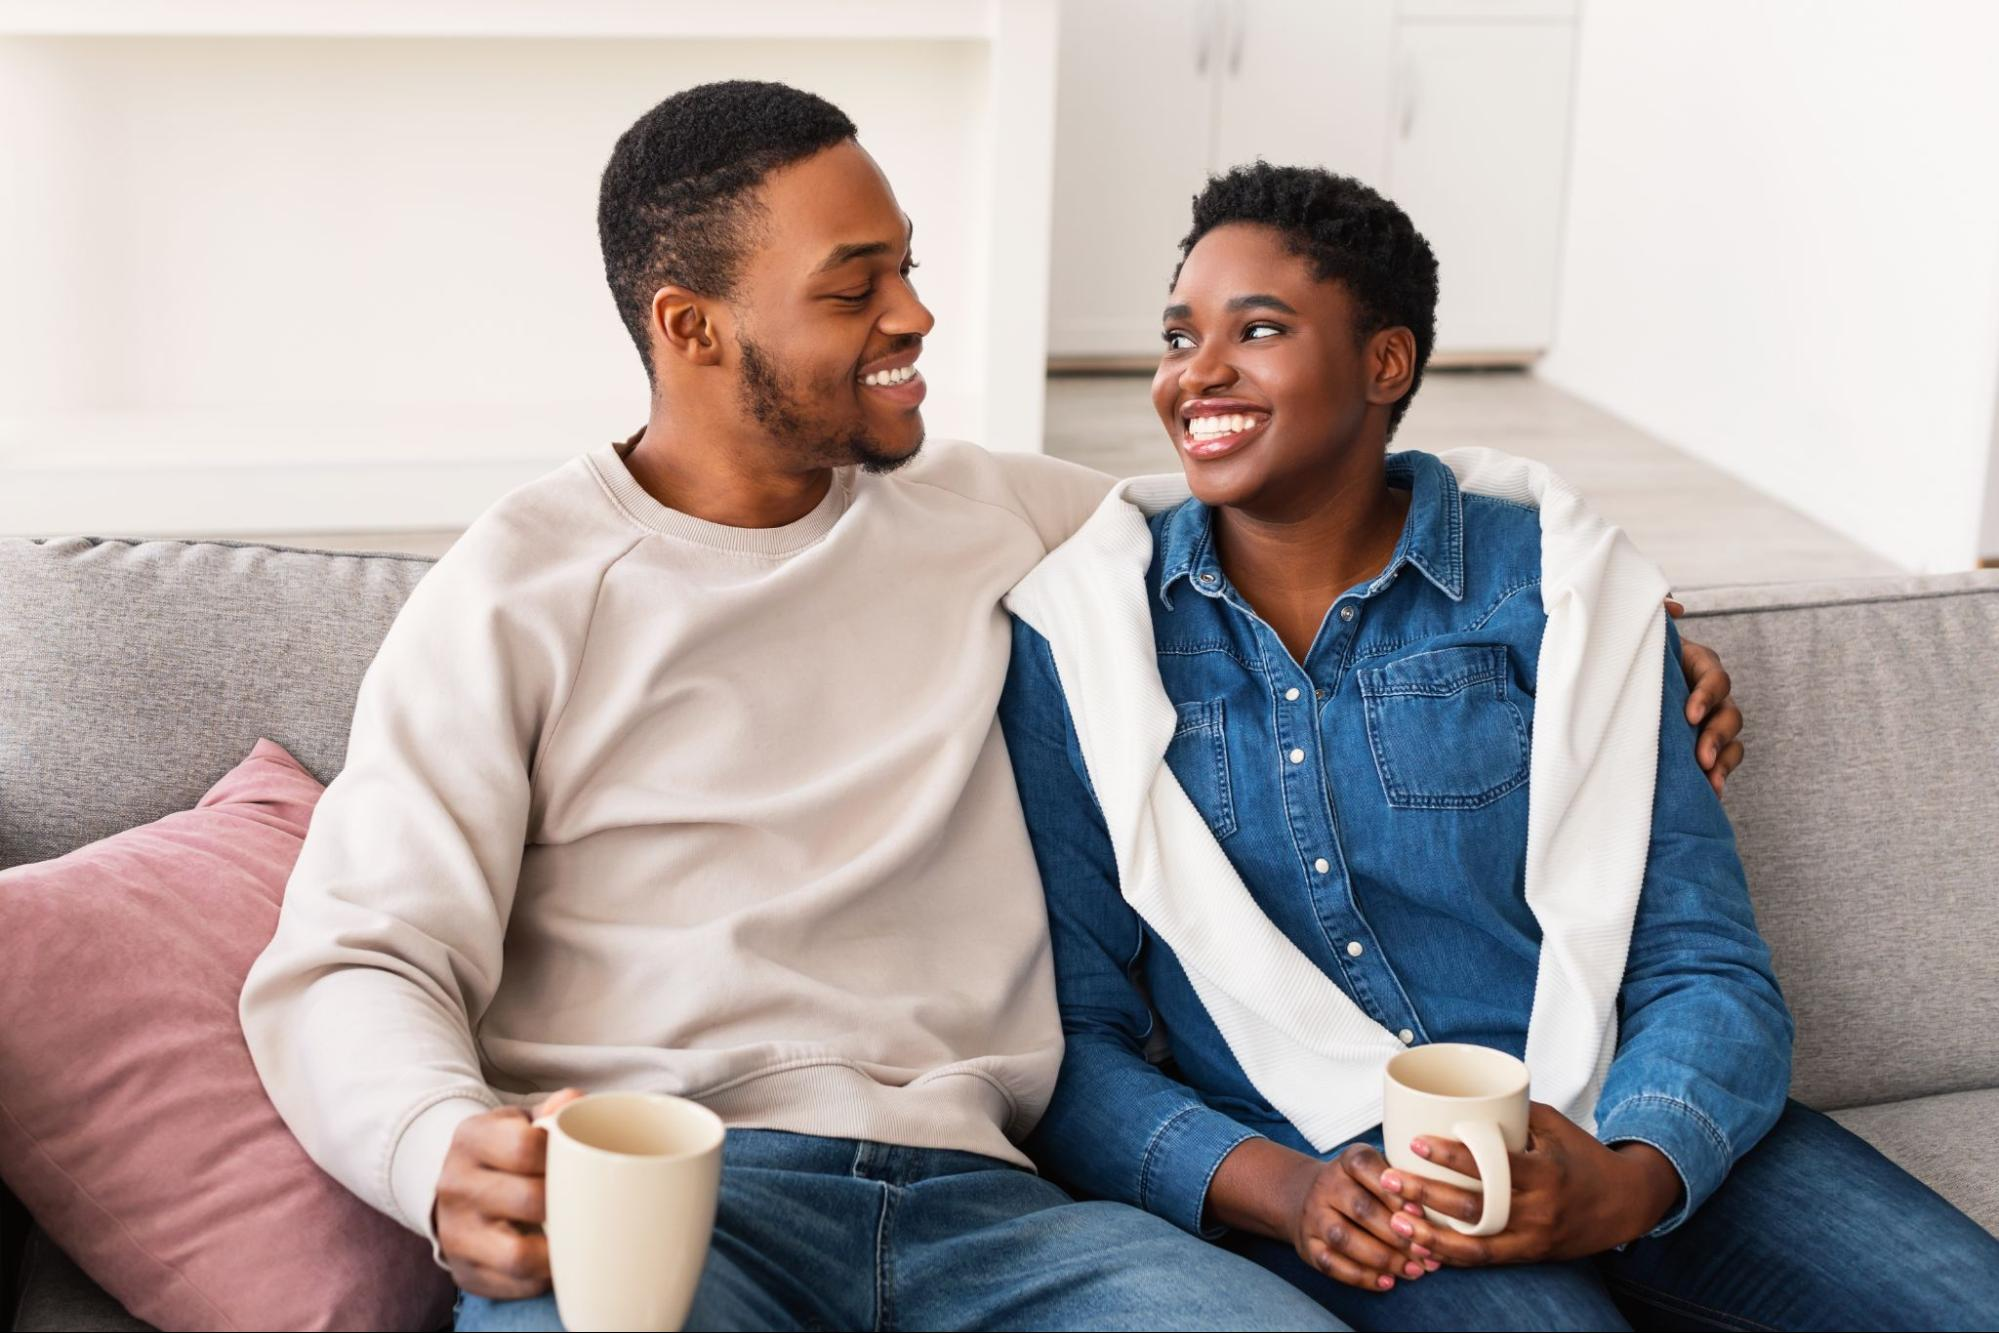 A smiling couple sits on their couch and drinks coffee